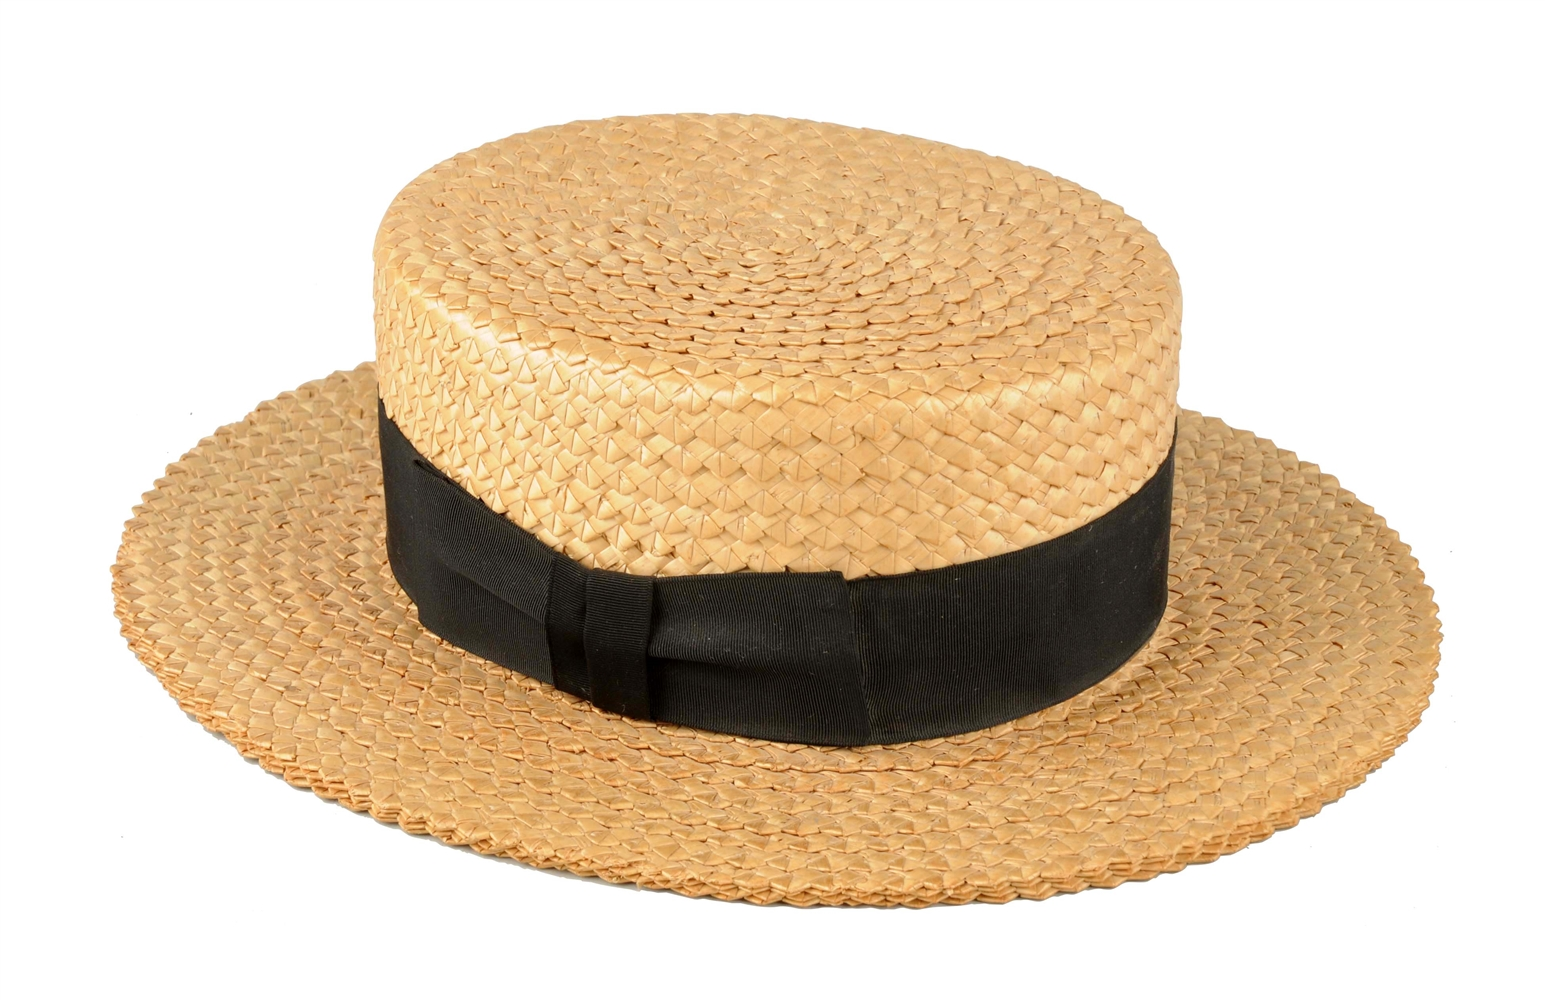 Early Stetson Straw Hat.